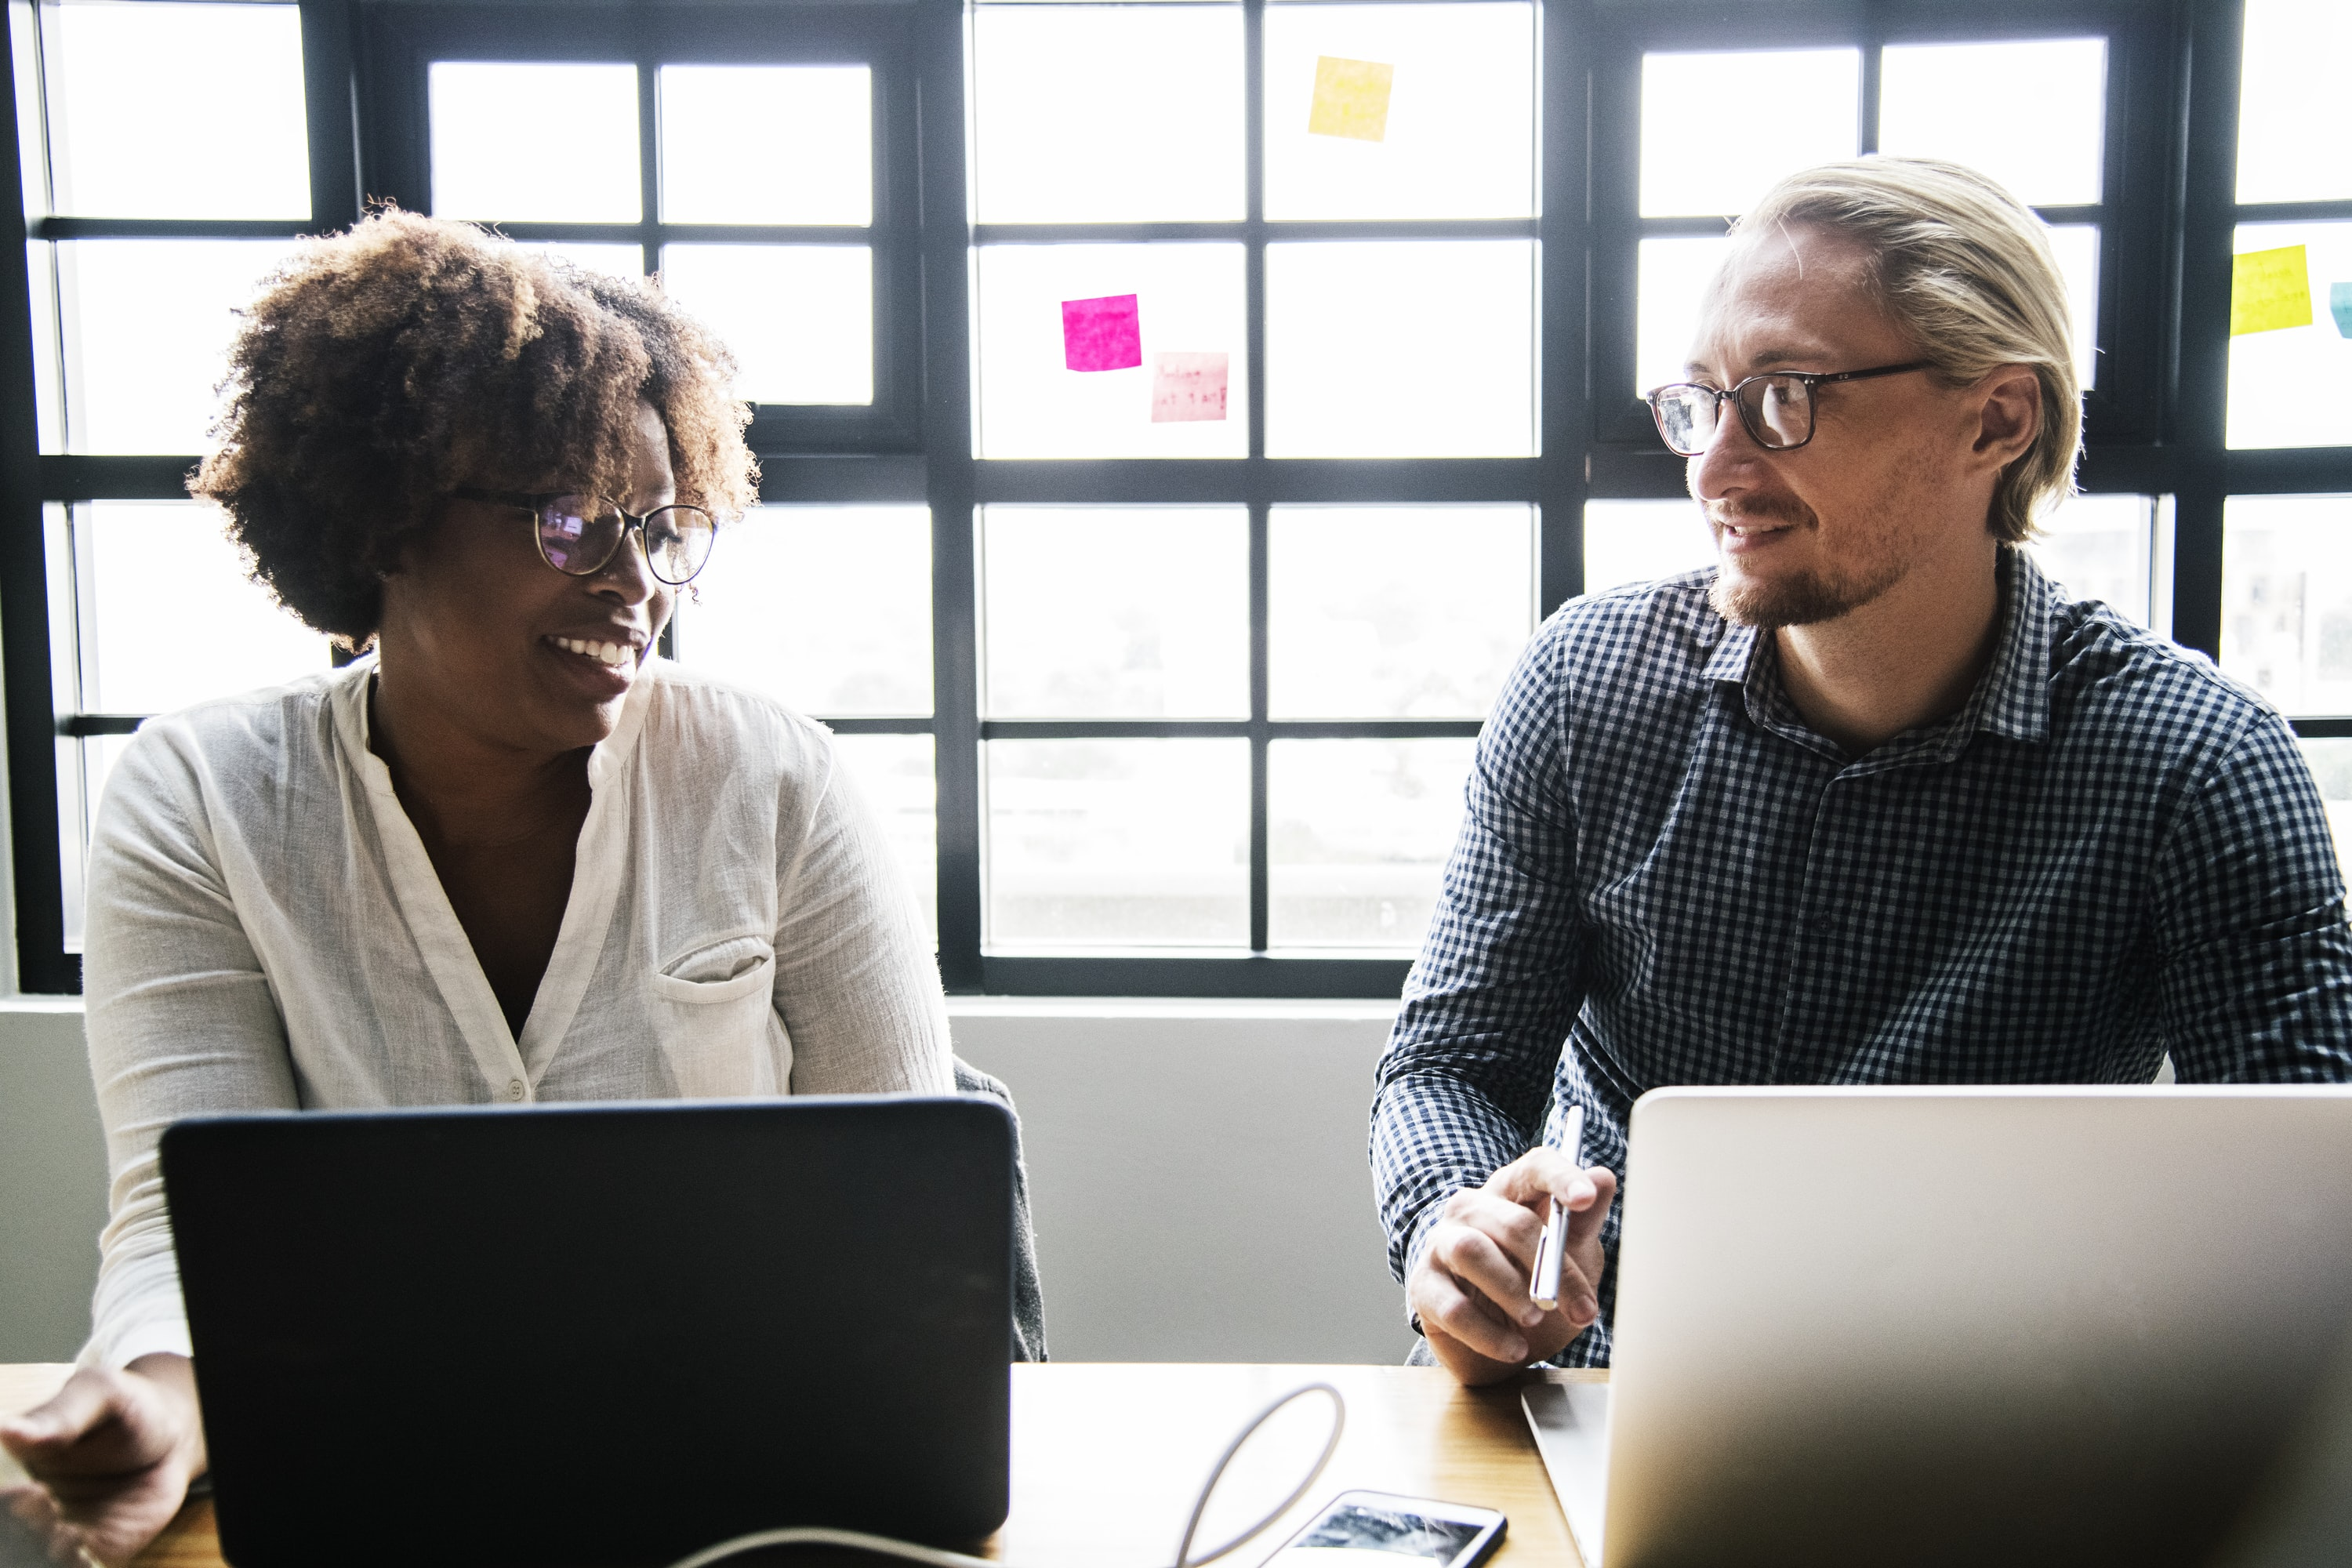 man and woman talking in front of laptops